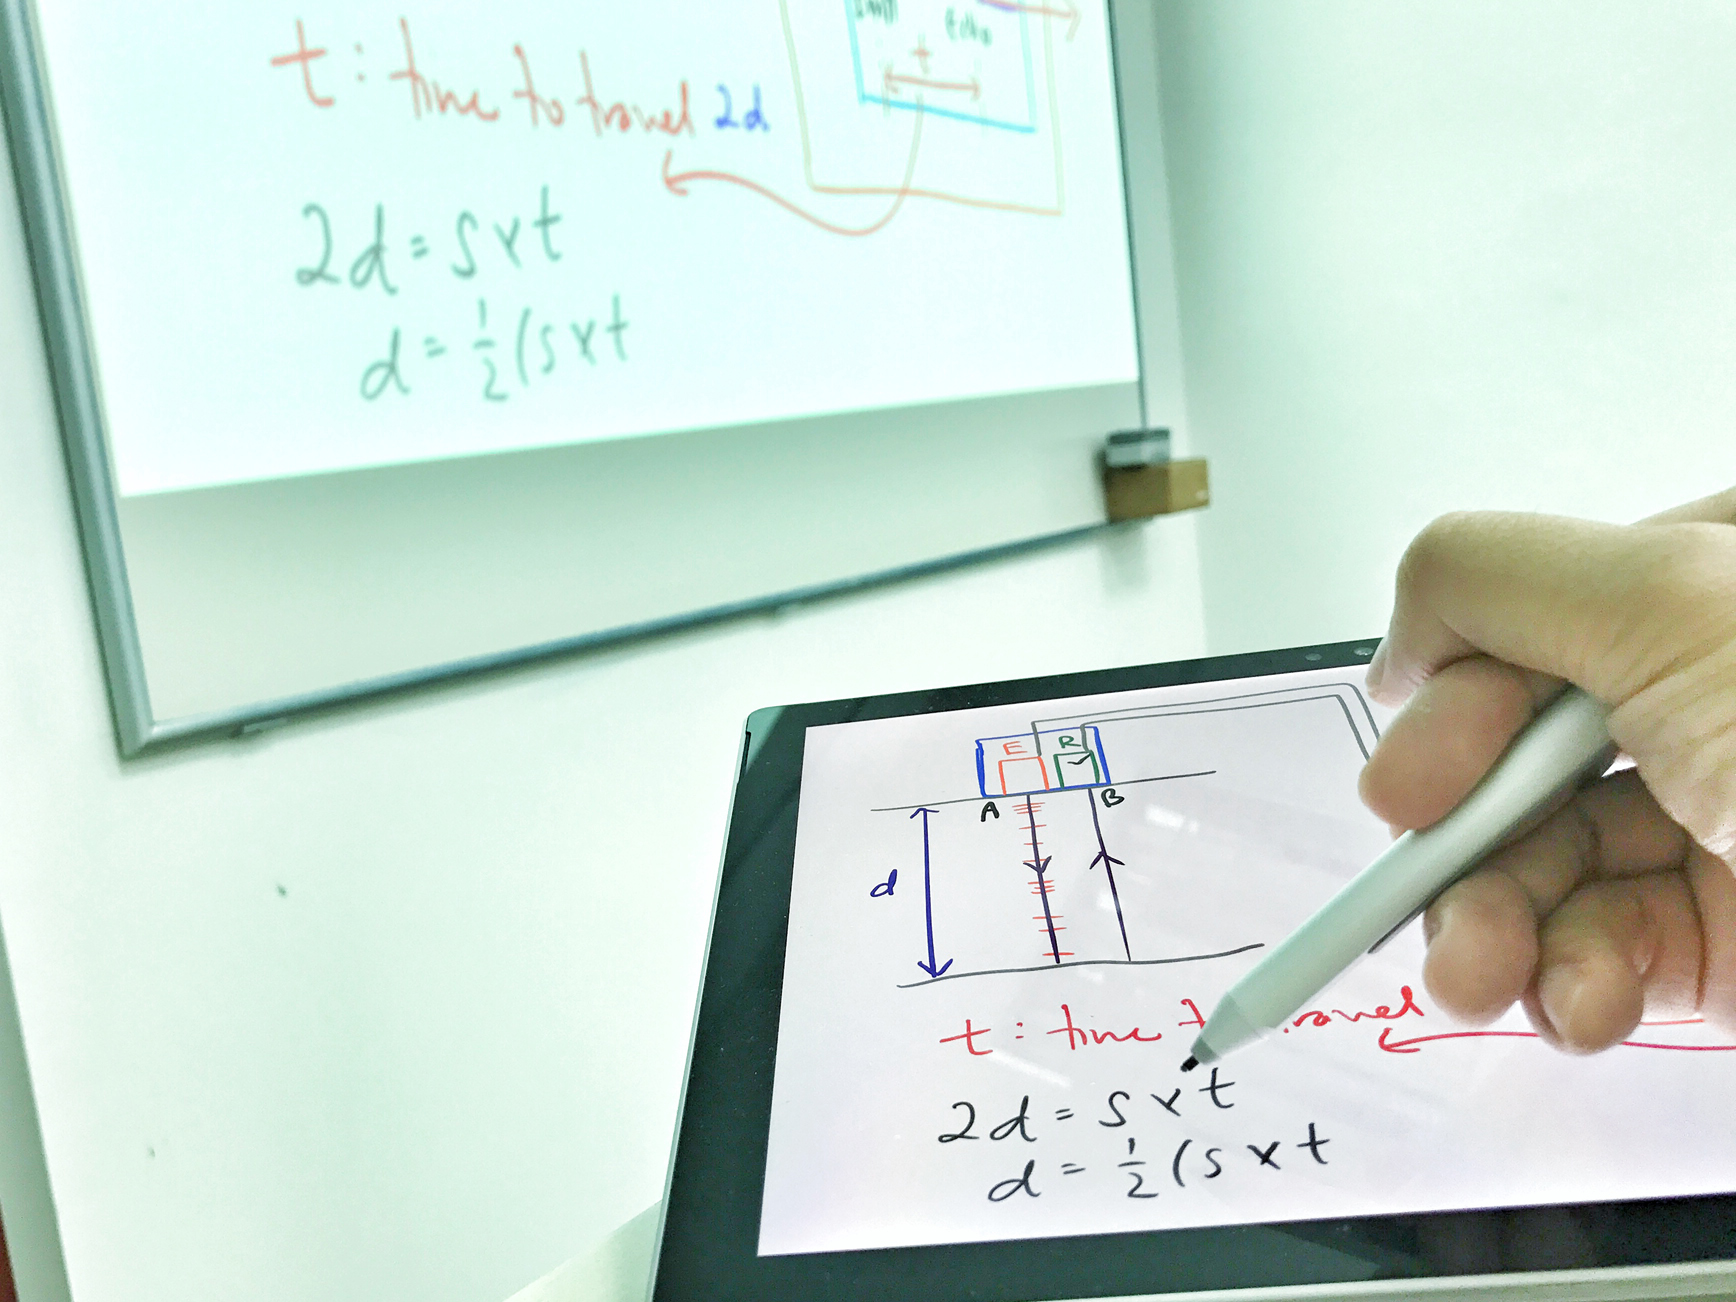 Calvin Kong ditched his whiteboard markers for the  Surface Pro . It allows him to draw colourful illustrations, save the images and send them to his students.